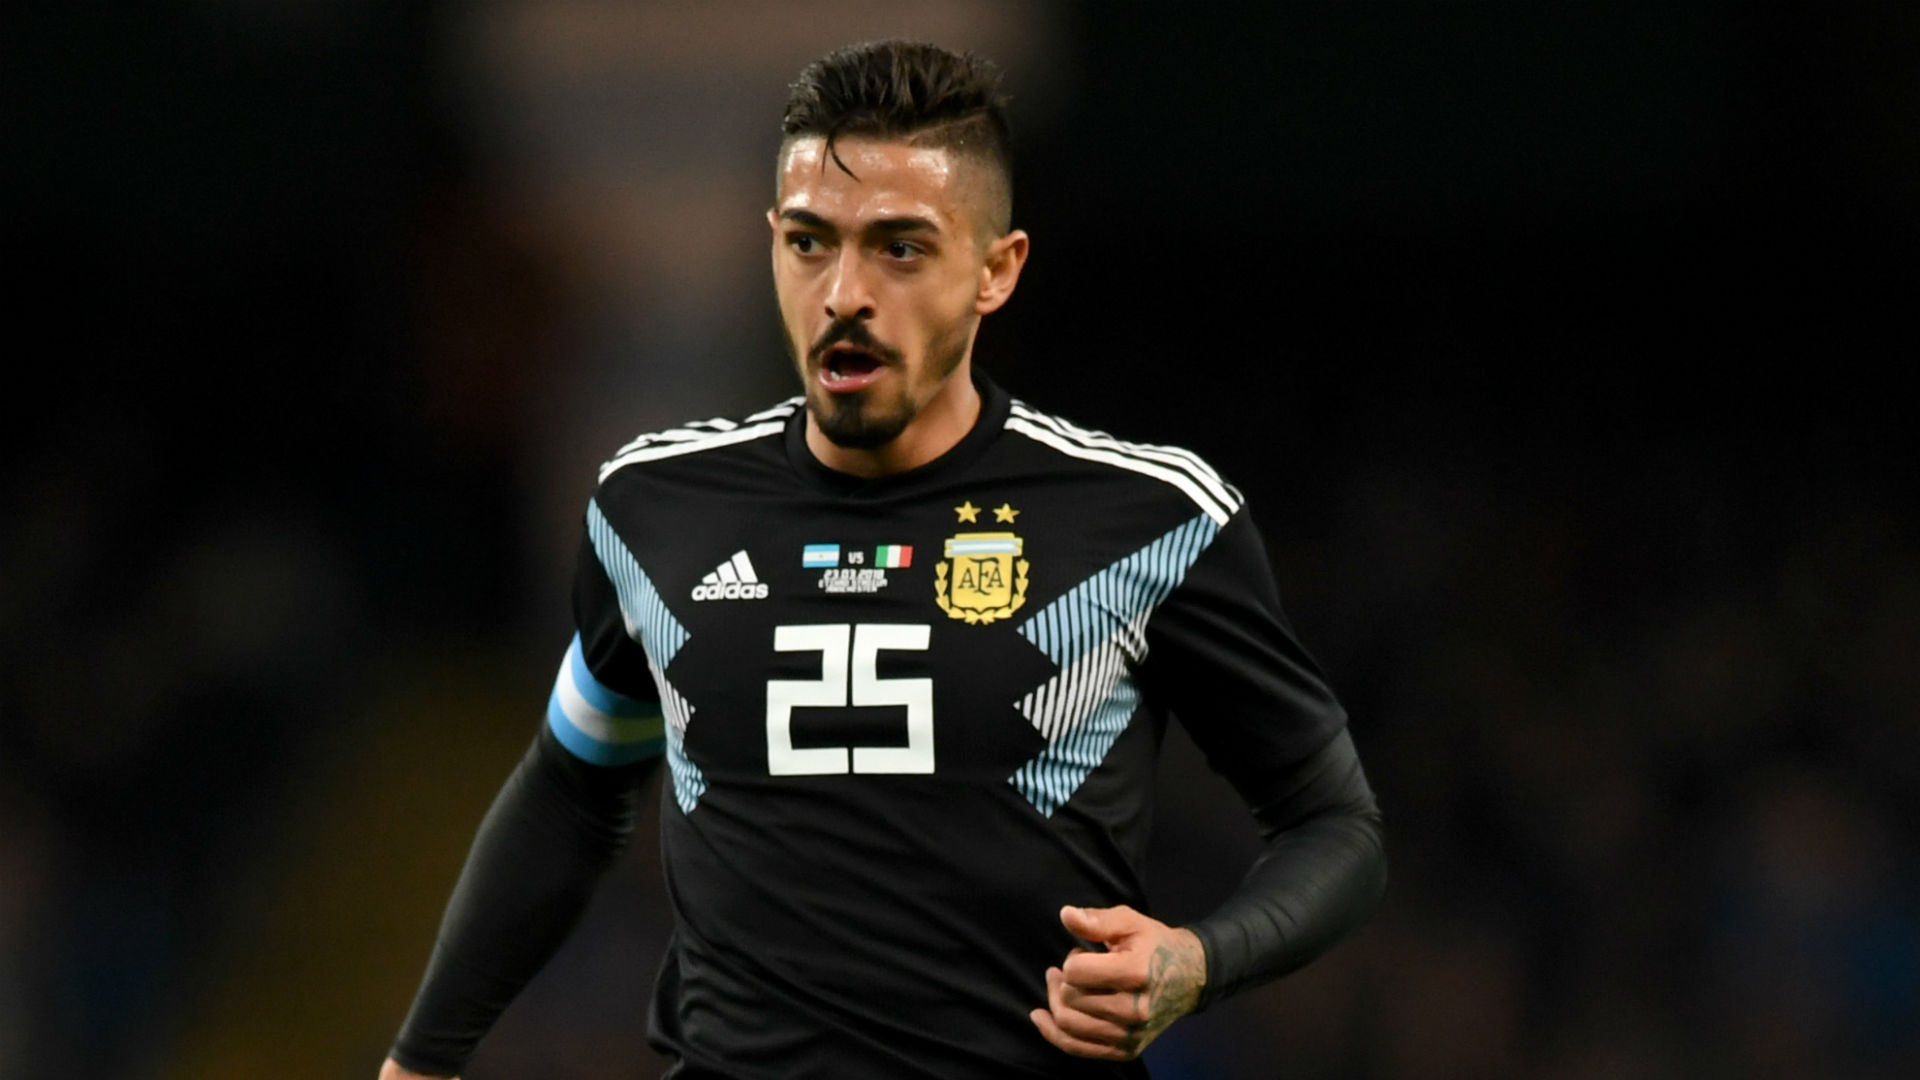 Argentina's Lanzini ruled out of Russia 2018